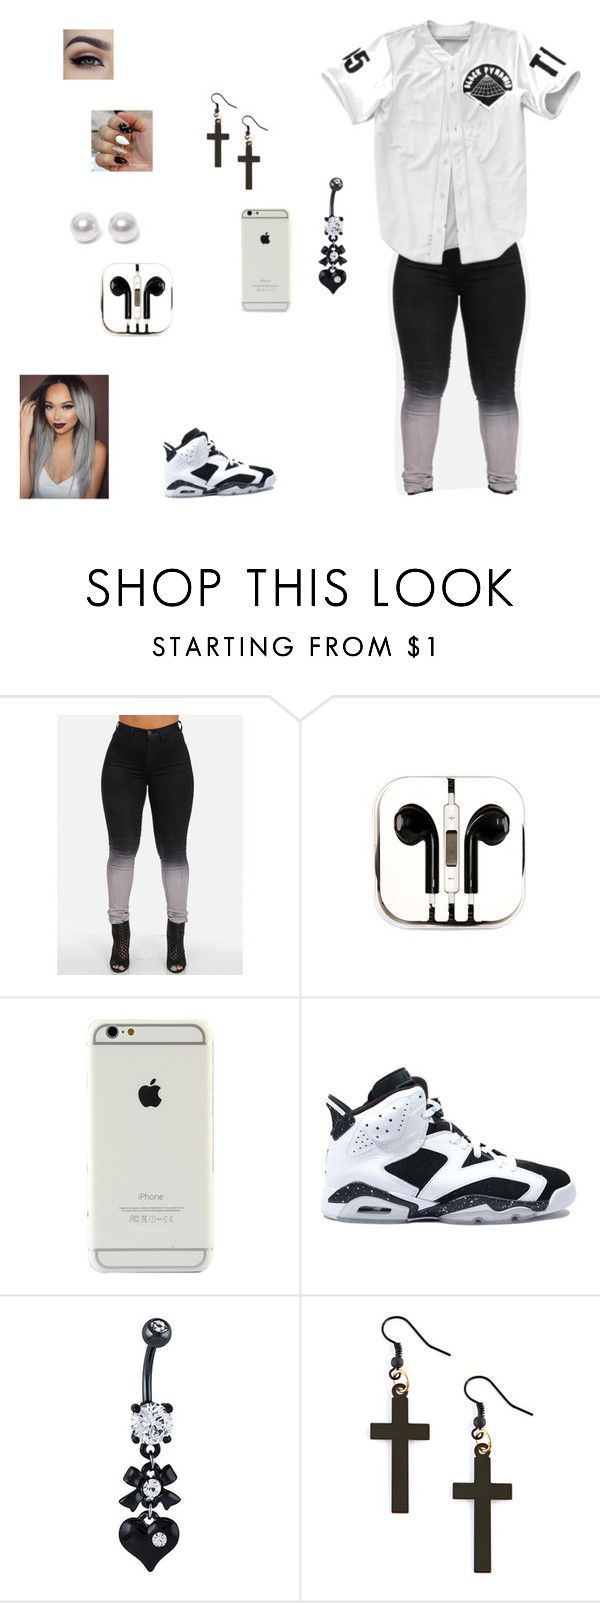 """""""Untitled #298"""" by lennora ❤ liked on Polyvore featuring PhunkeeTree, NBD, Retrò, Nouv-Elle, women's clothing, women, female, woman, misses and juniors"""